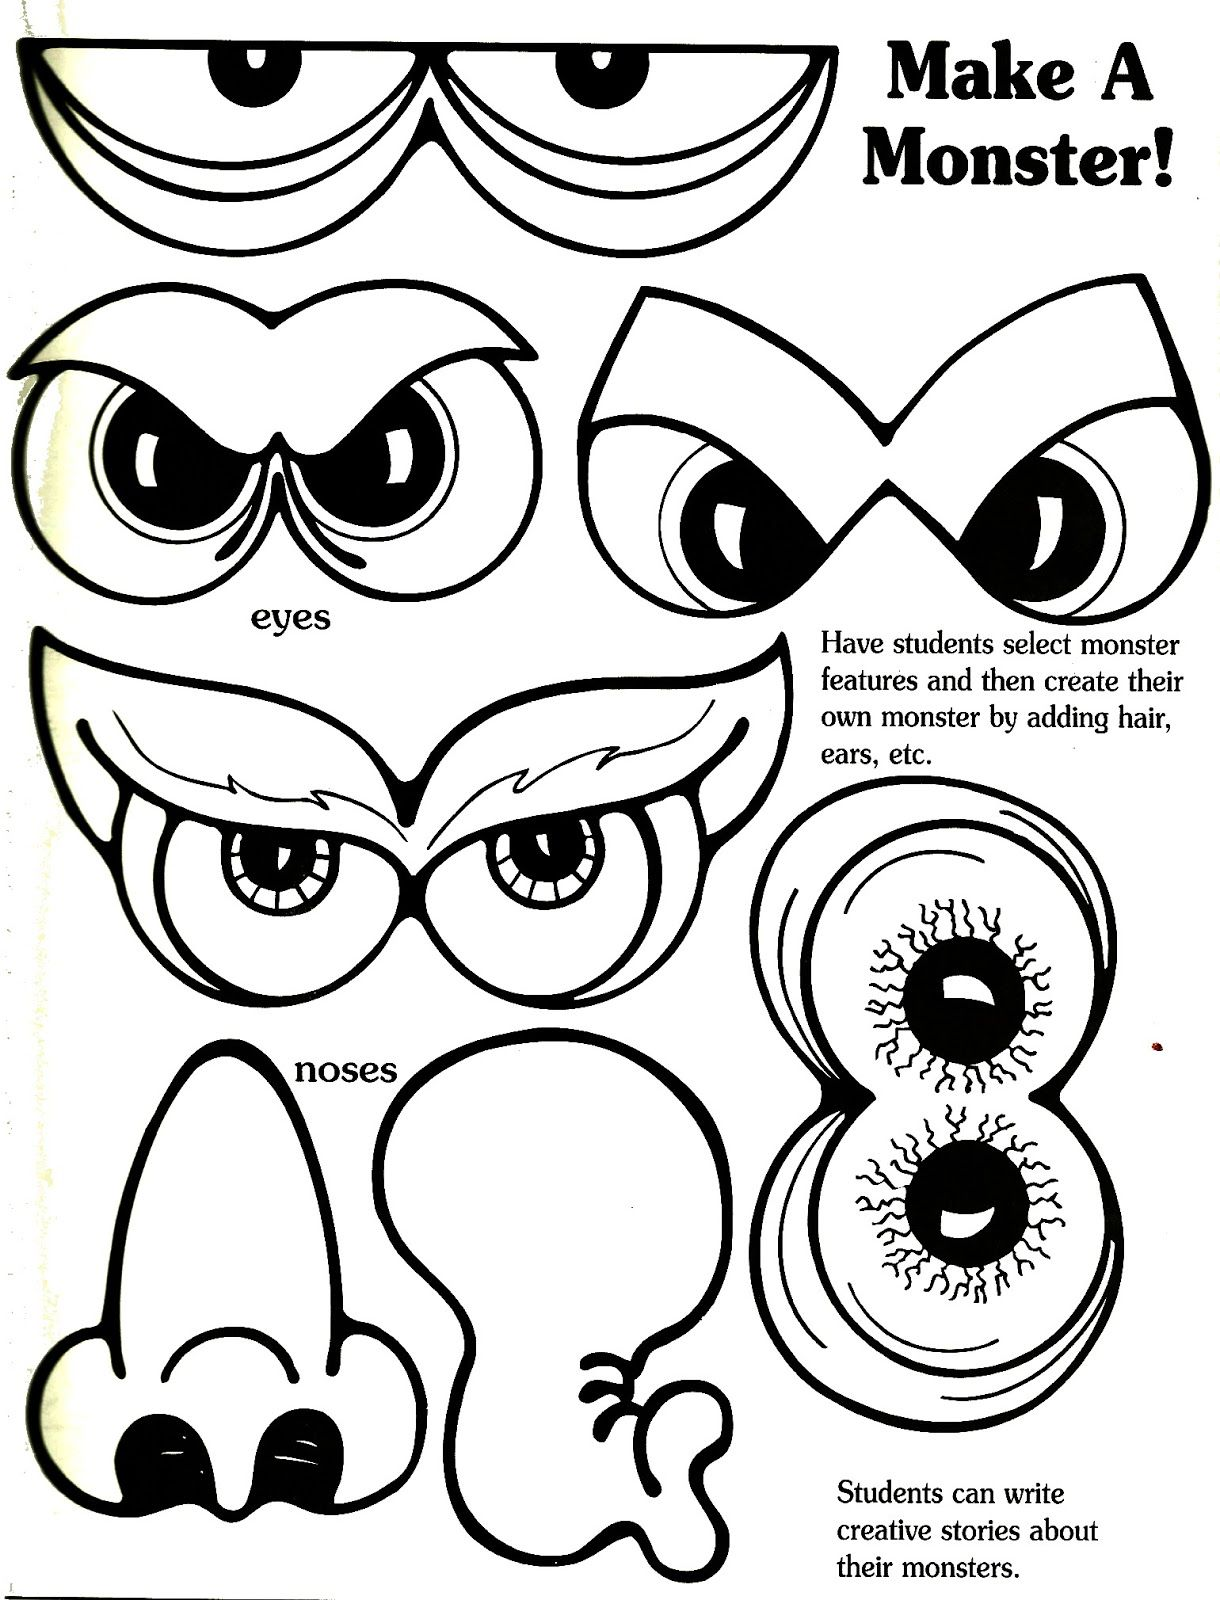 Print Out The Face Sheets On Magnet Paper You Can Print Out The Facial Features On Magnet Paper